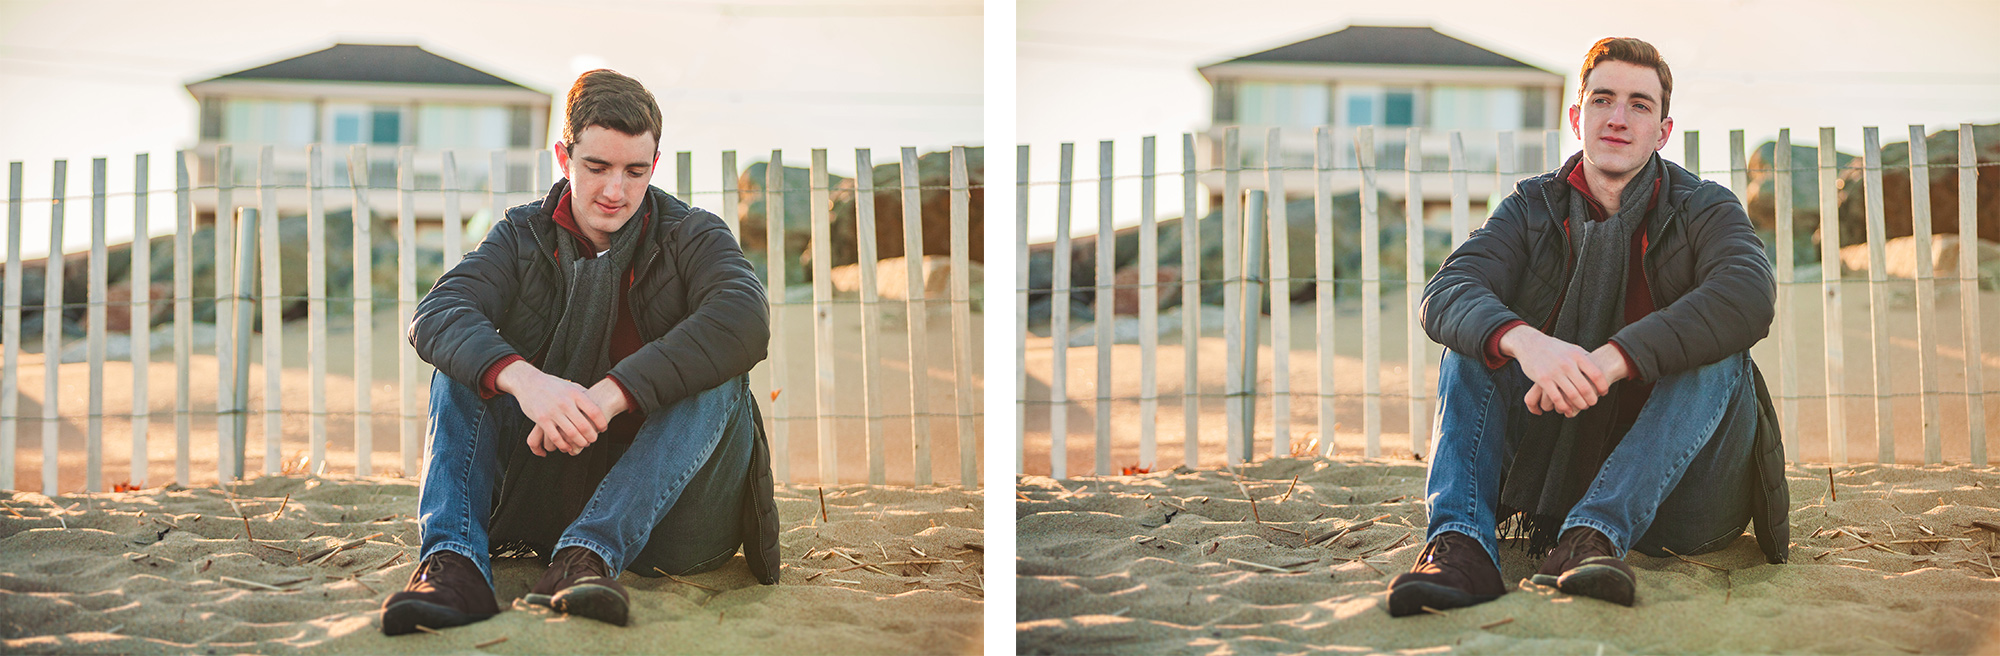 New England Beach Senior Portrait Photographer | Stephen Grant Photography